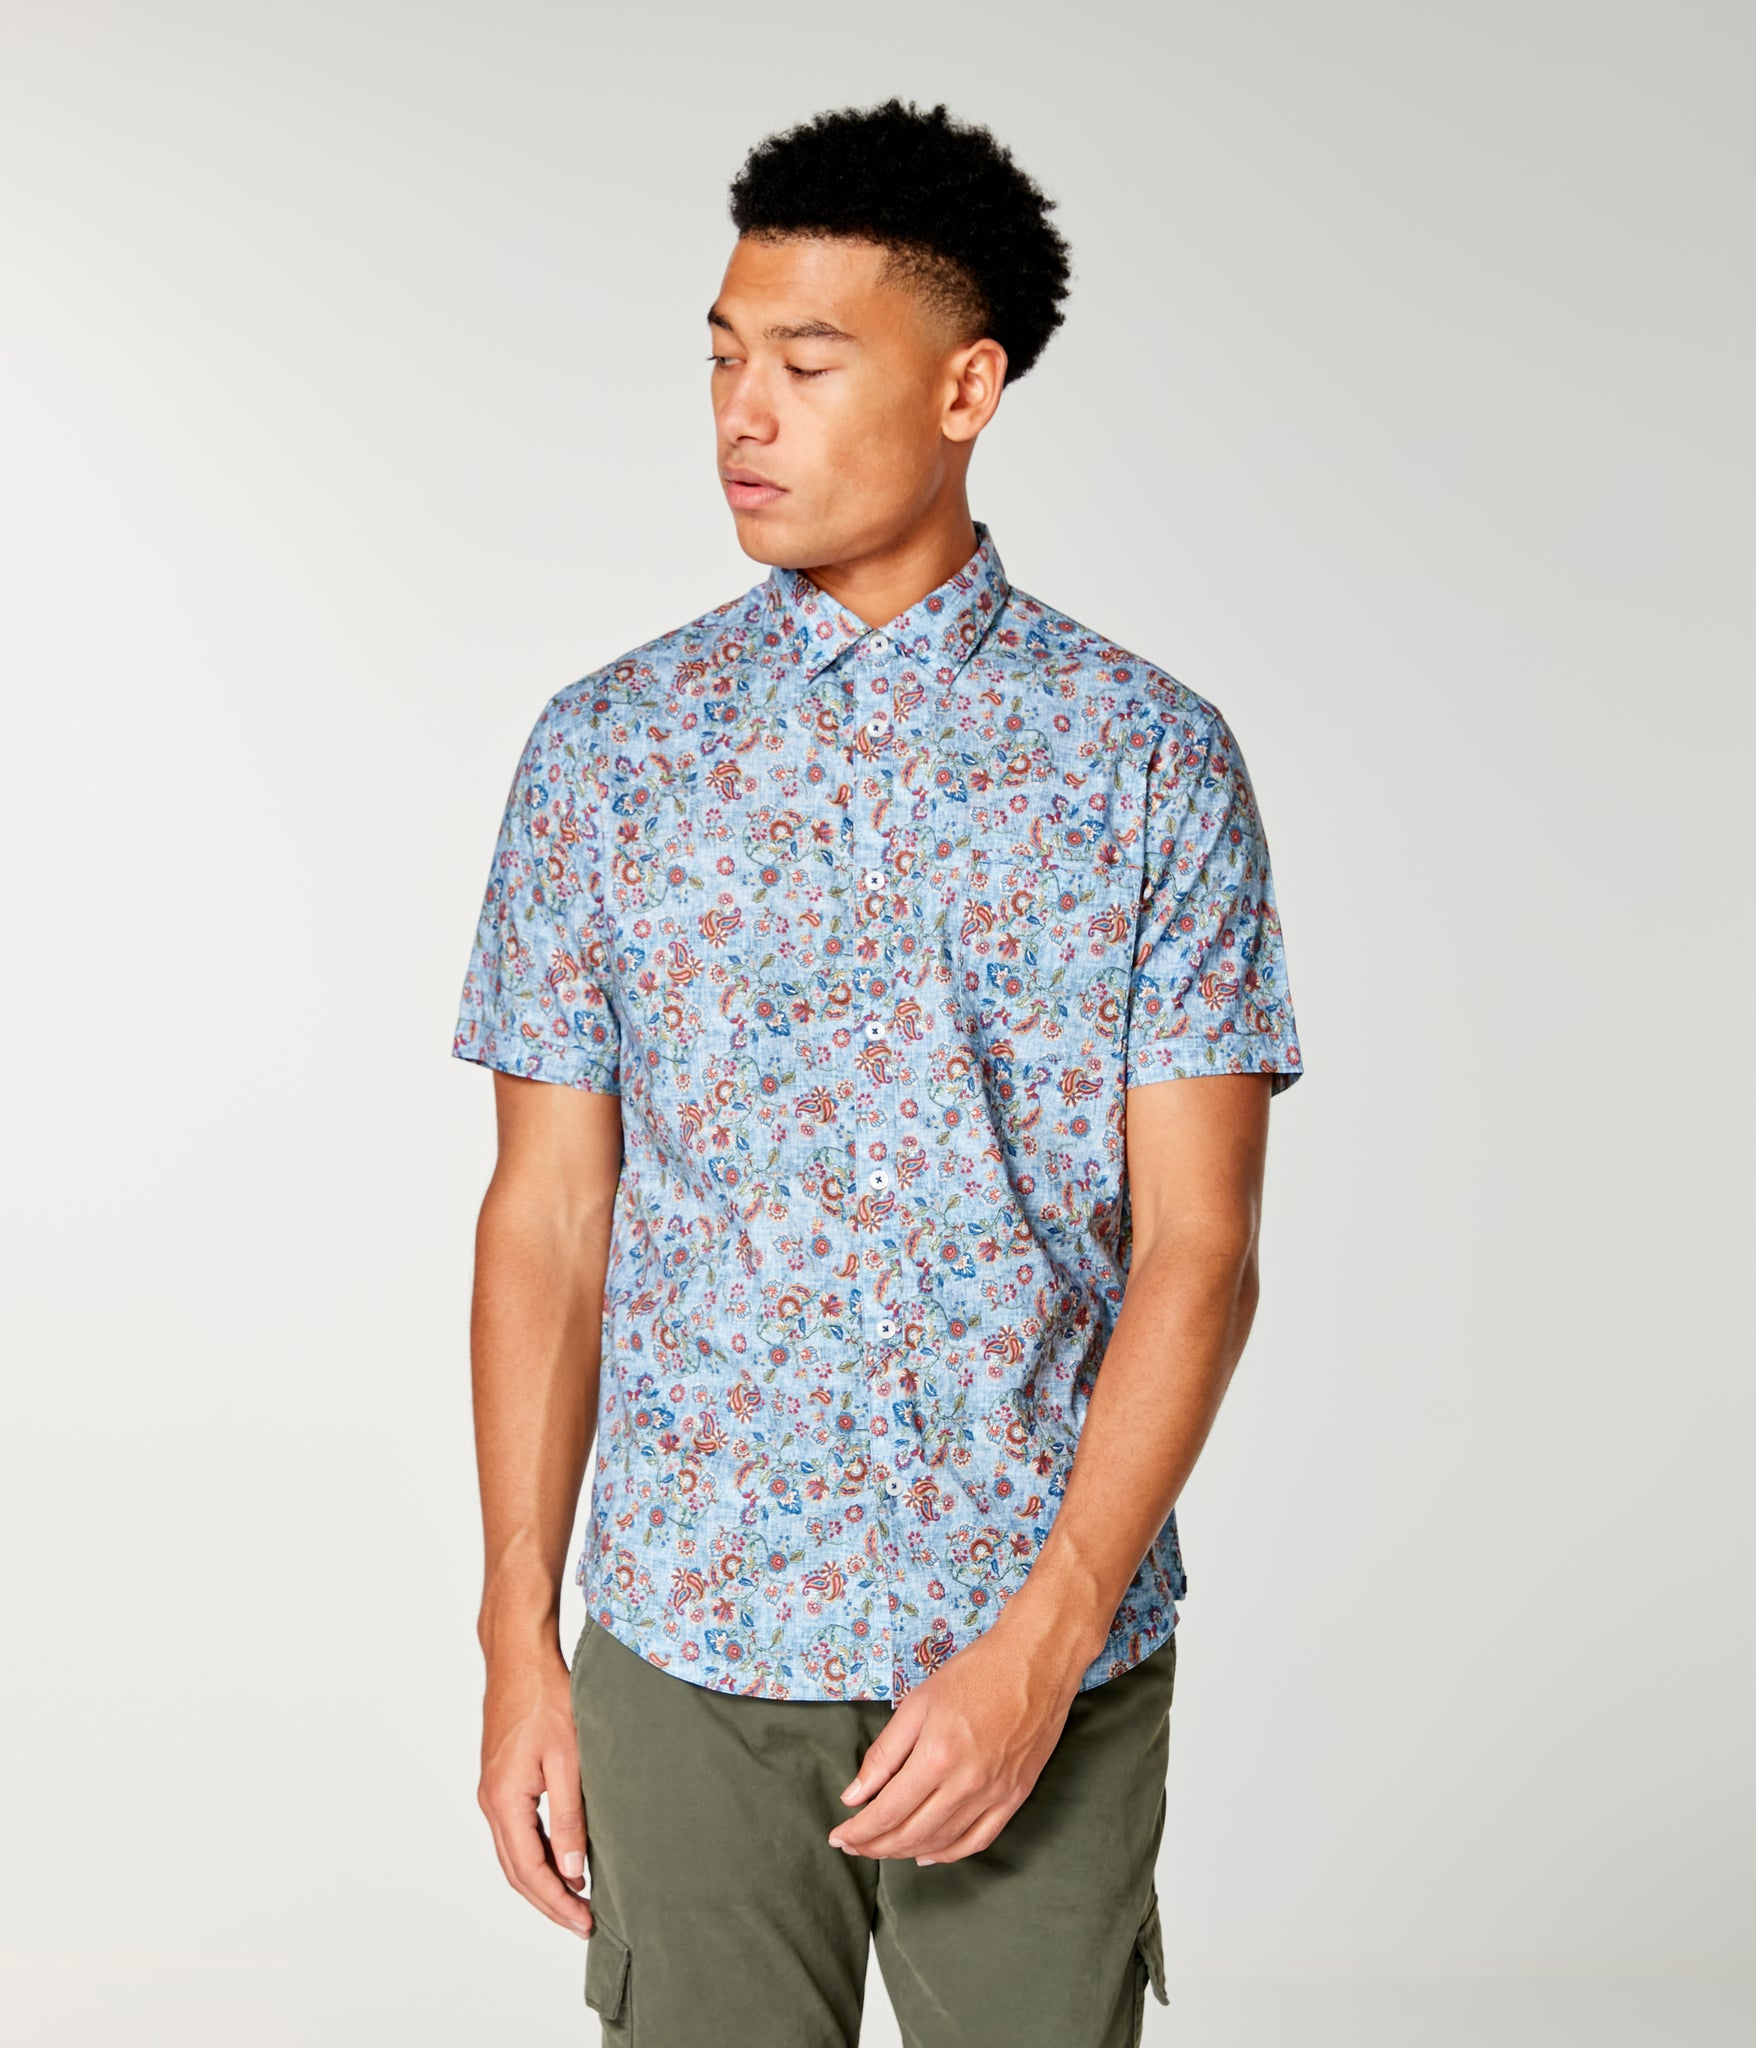 On-Point Print Shirt Short Sleeve - Indigo Asia Floral